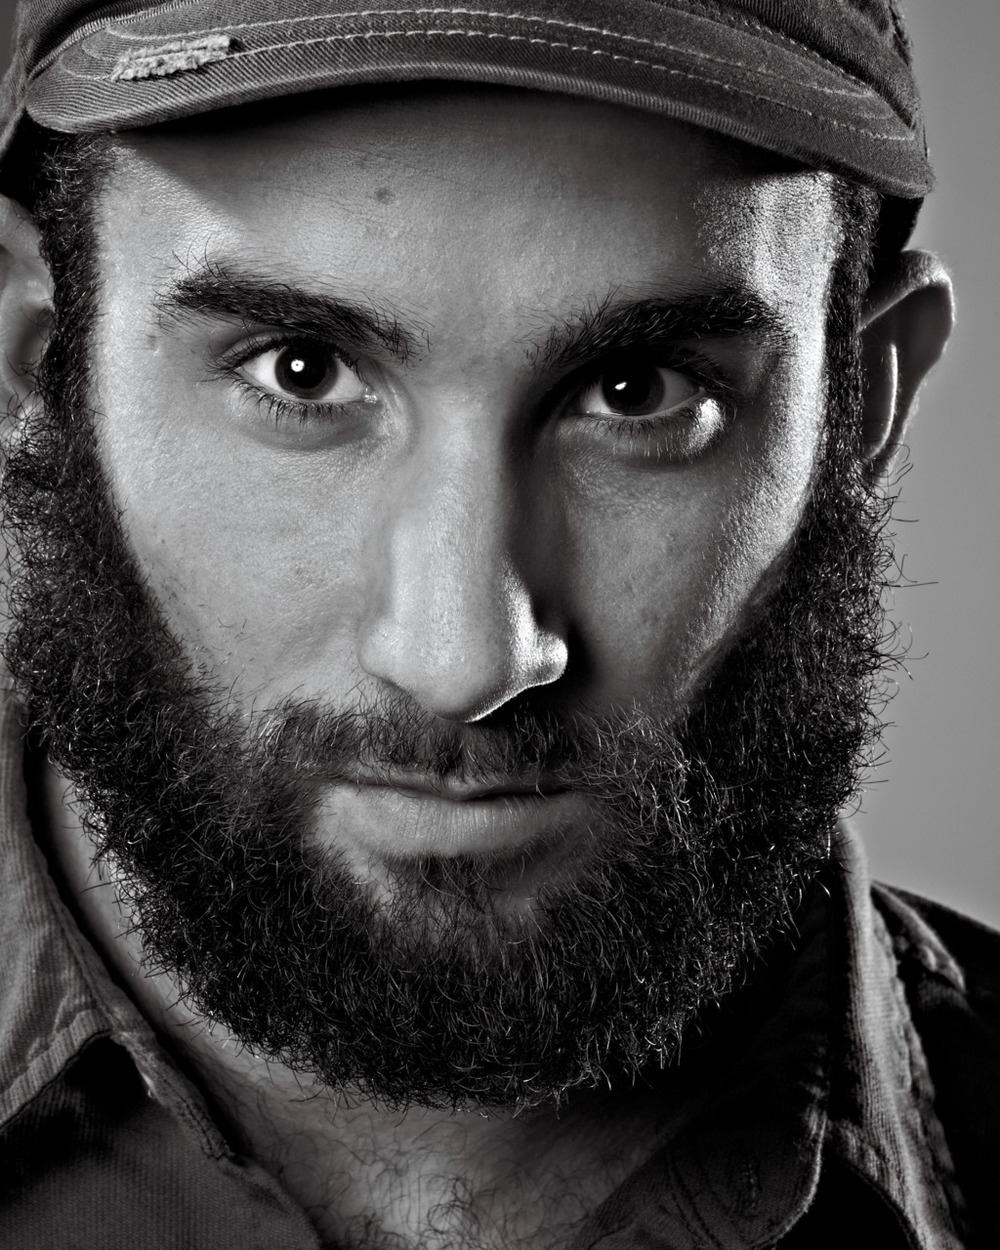 The only portrait I'll ever enjoy of myself- me as Castro